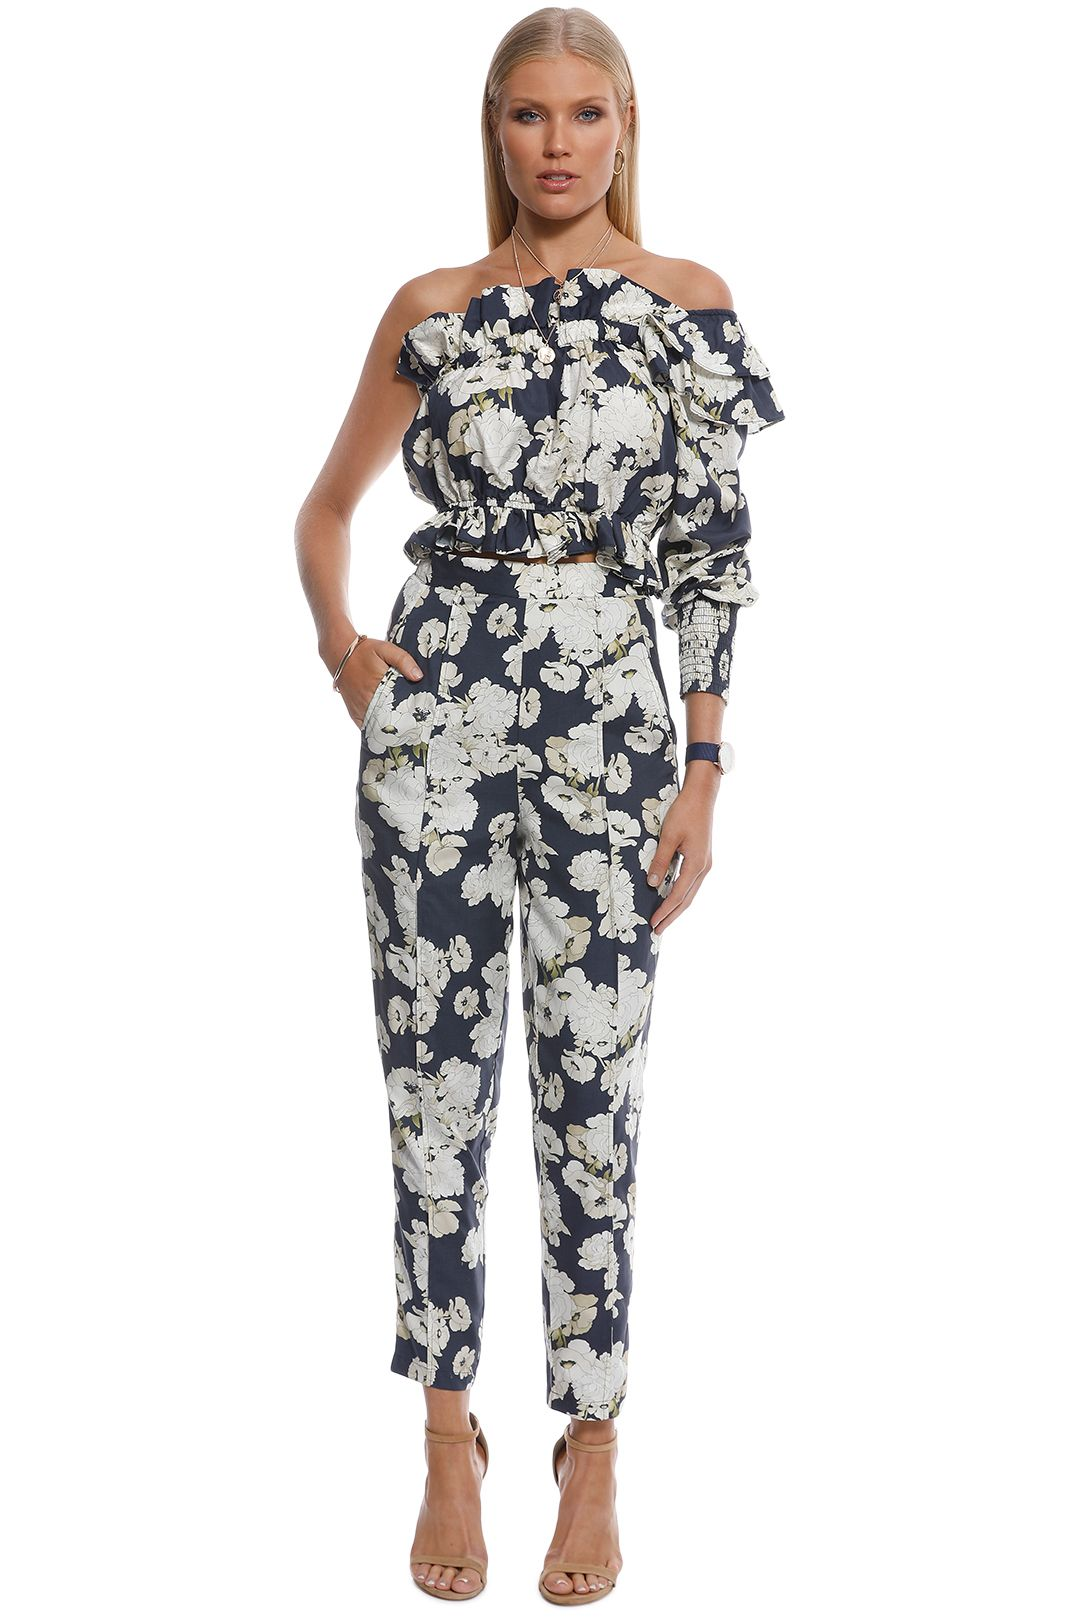 SIR the Label - Bellagio One Shoulder Top - Multi - Front